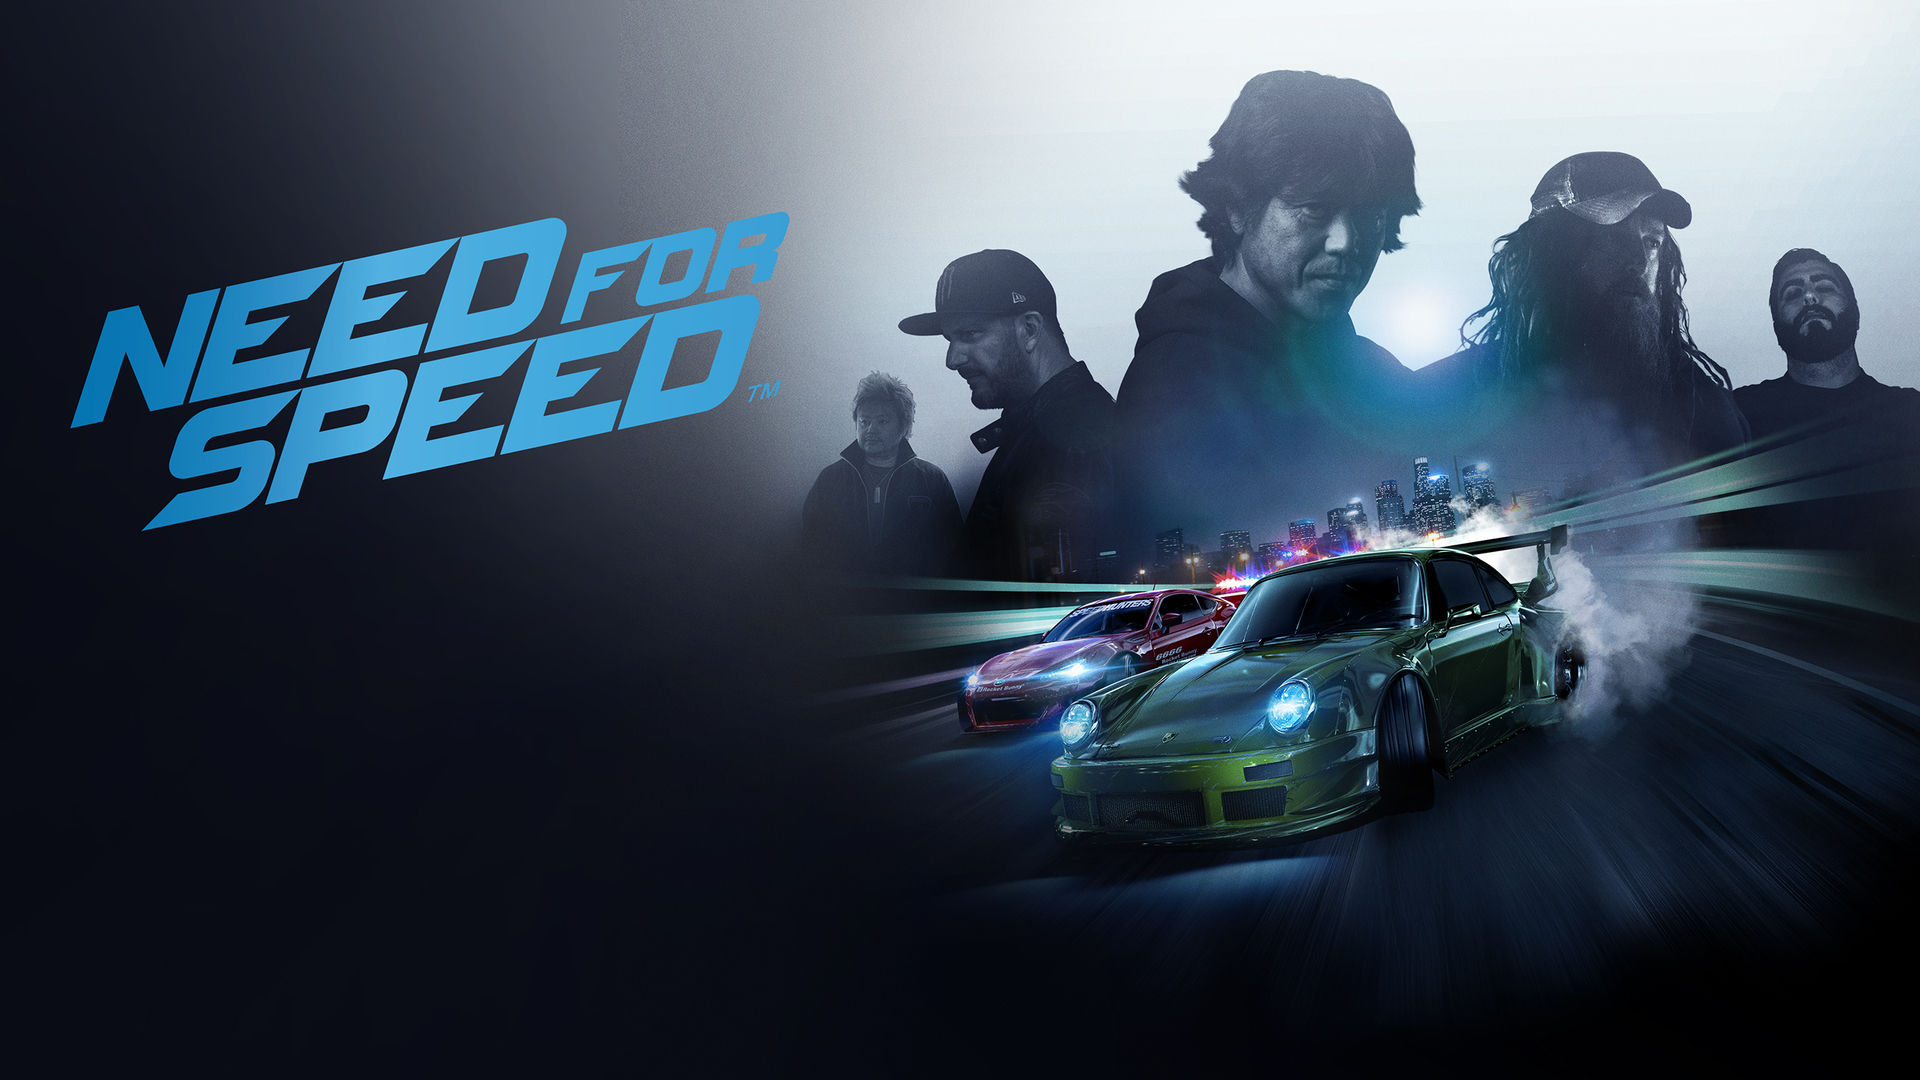 Logo gry Need for Speed z 2015 r. Wallpaper from Need for Speed